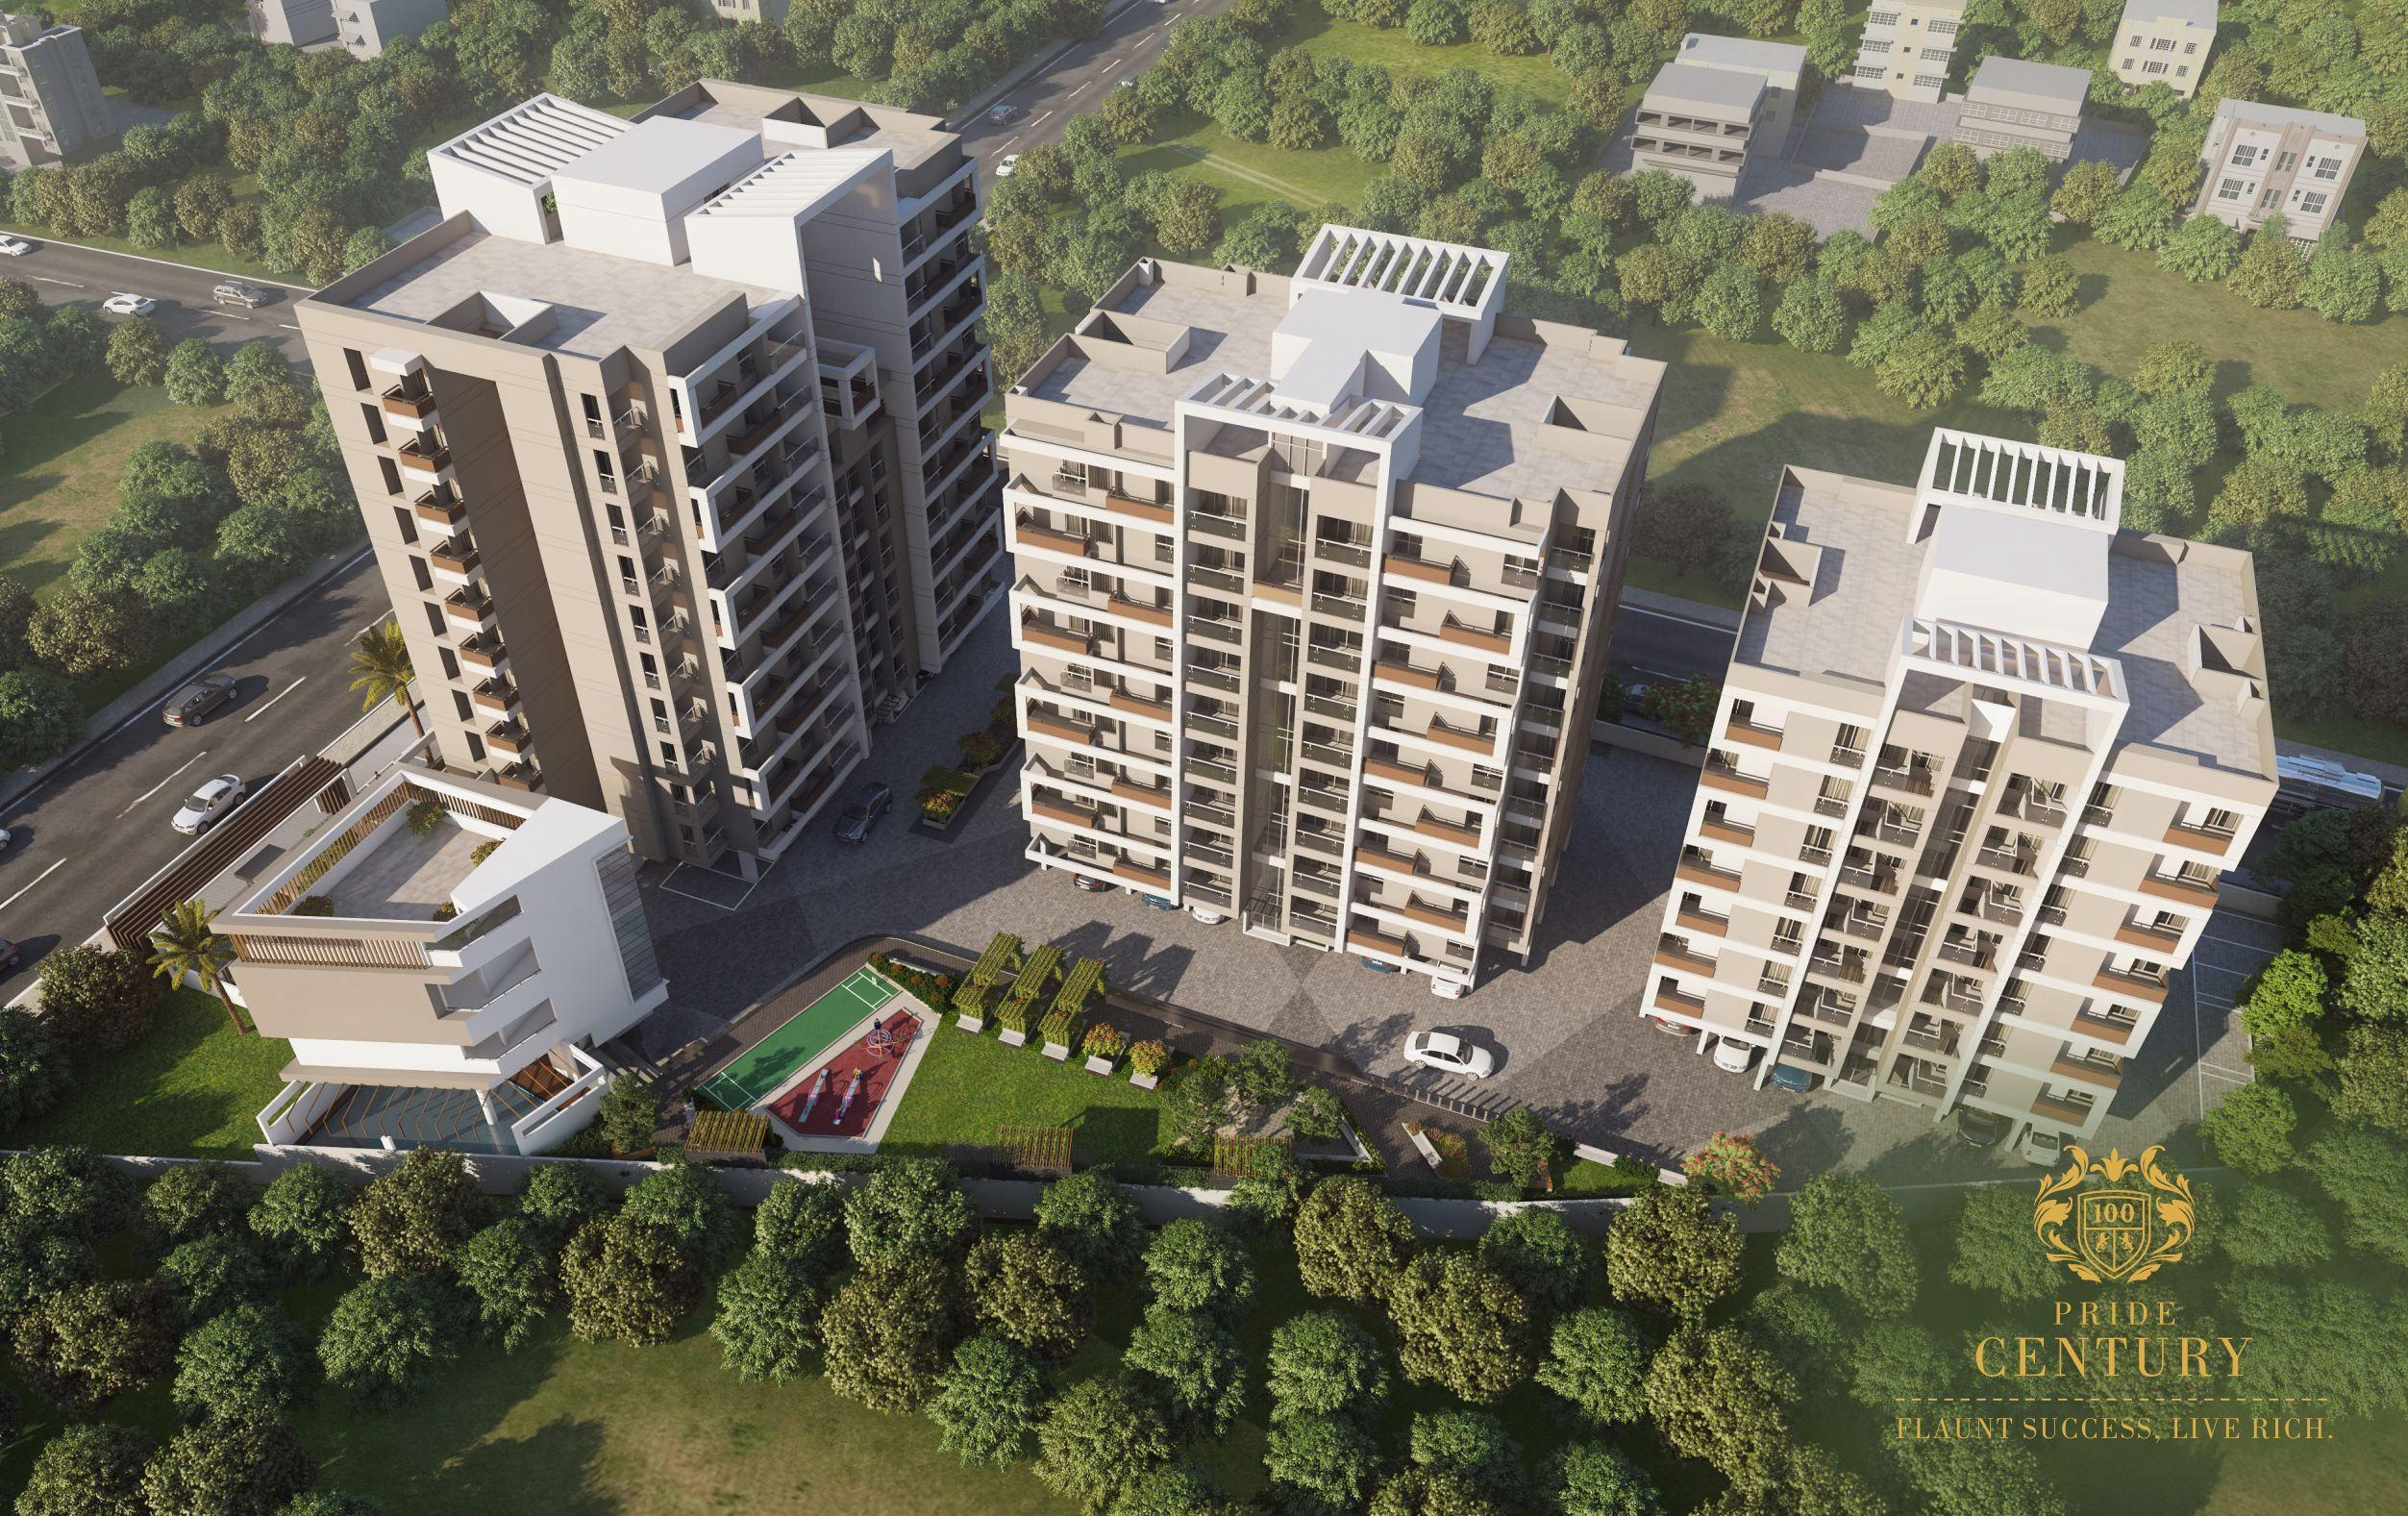 birds eye view top pride century want to buy 4 bhk flat in city aurangabad pride group rich class people rera approved properties